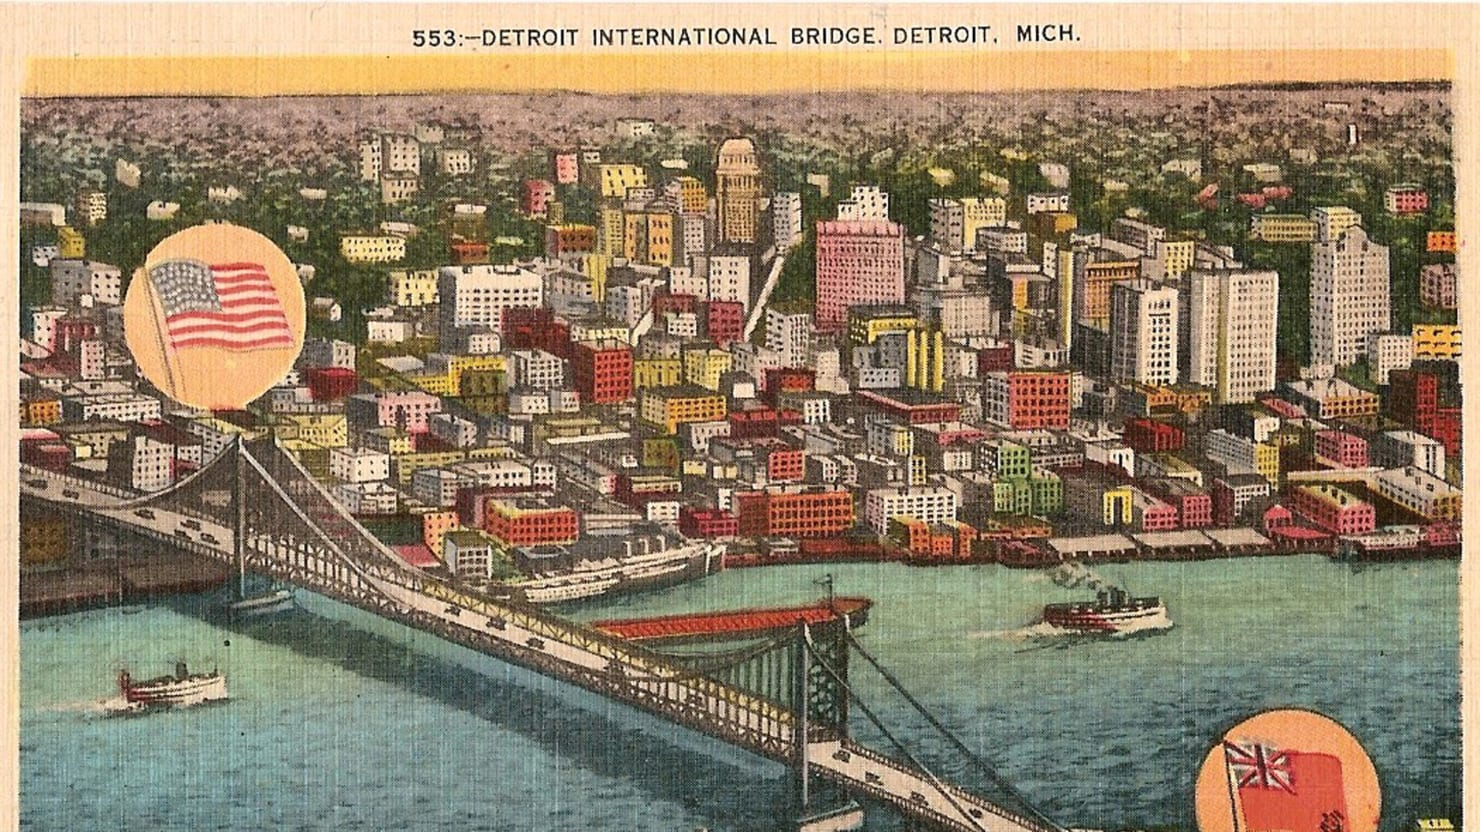 The 10 Best Books About the Motor City